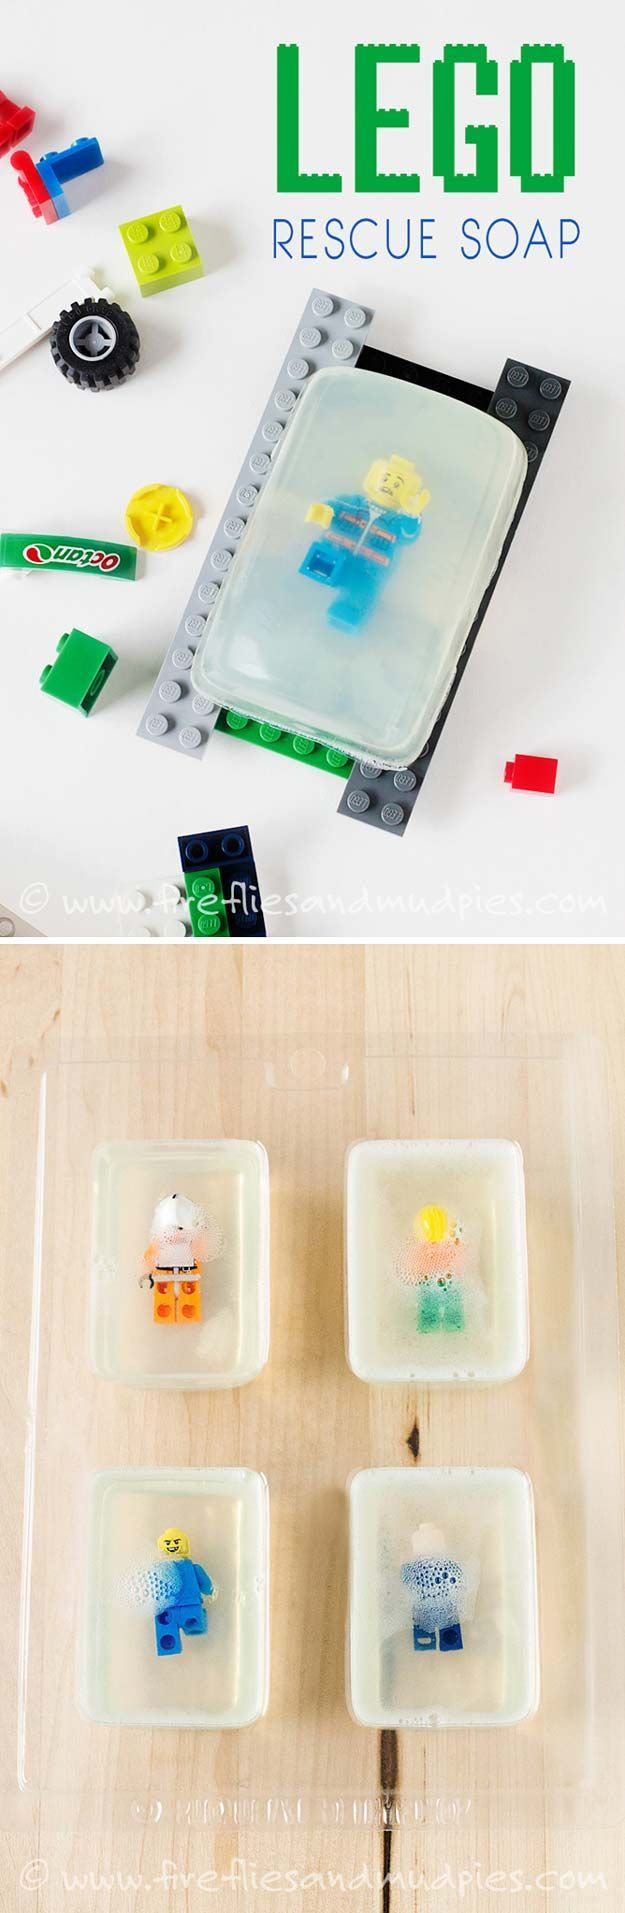 Cool DIY Lego Project Inspiration | Cute And Creative Crafts by DIY Ready at diyready.com/...